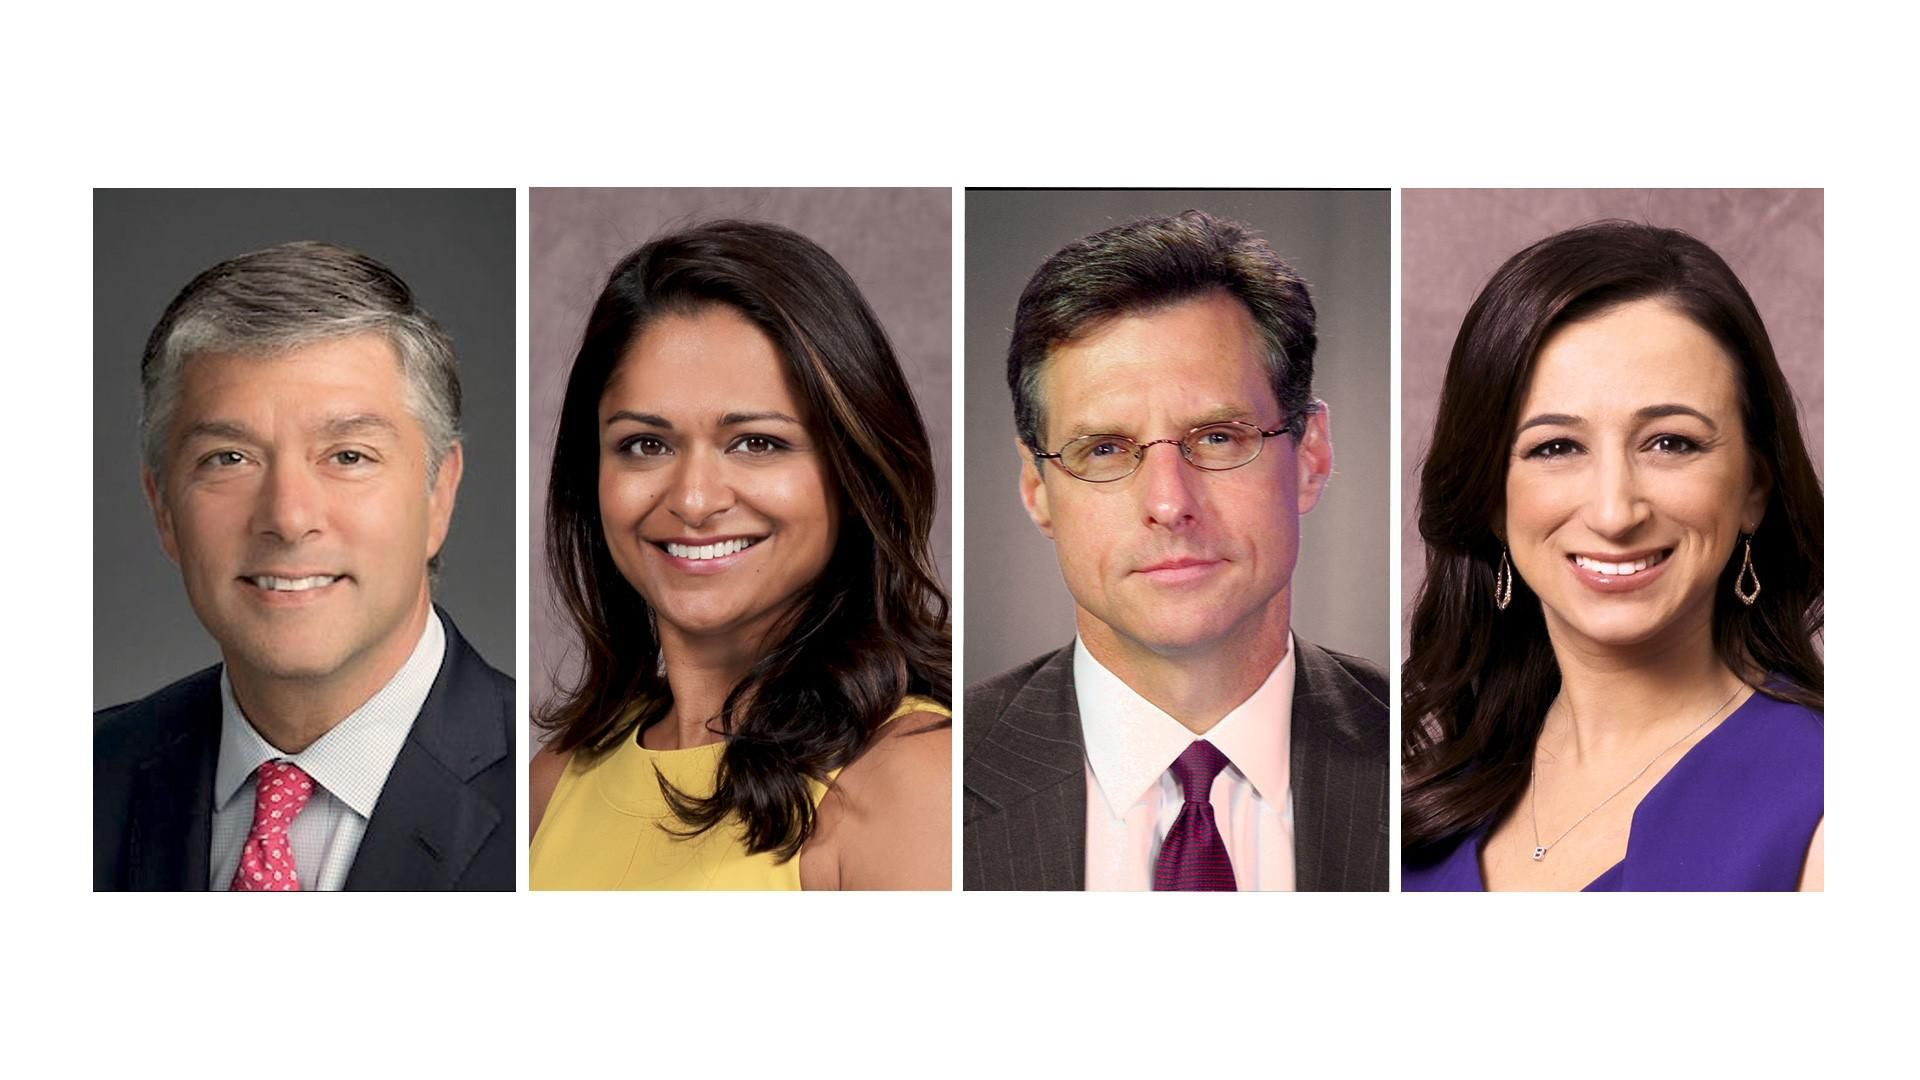 Experts from Bank of America's Chief Investment Office and BofA Global Research